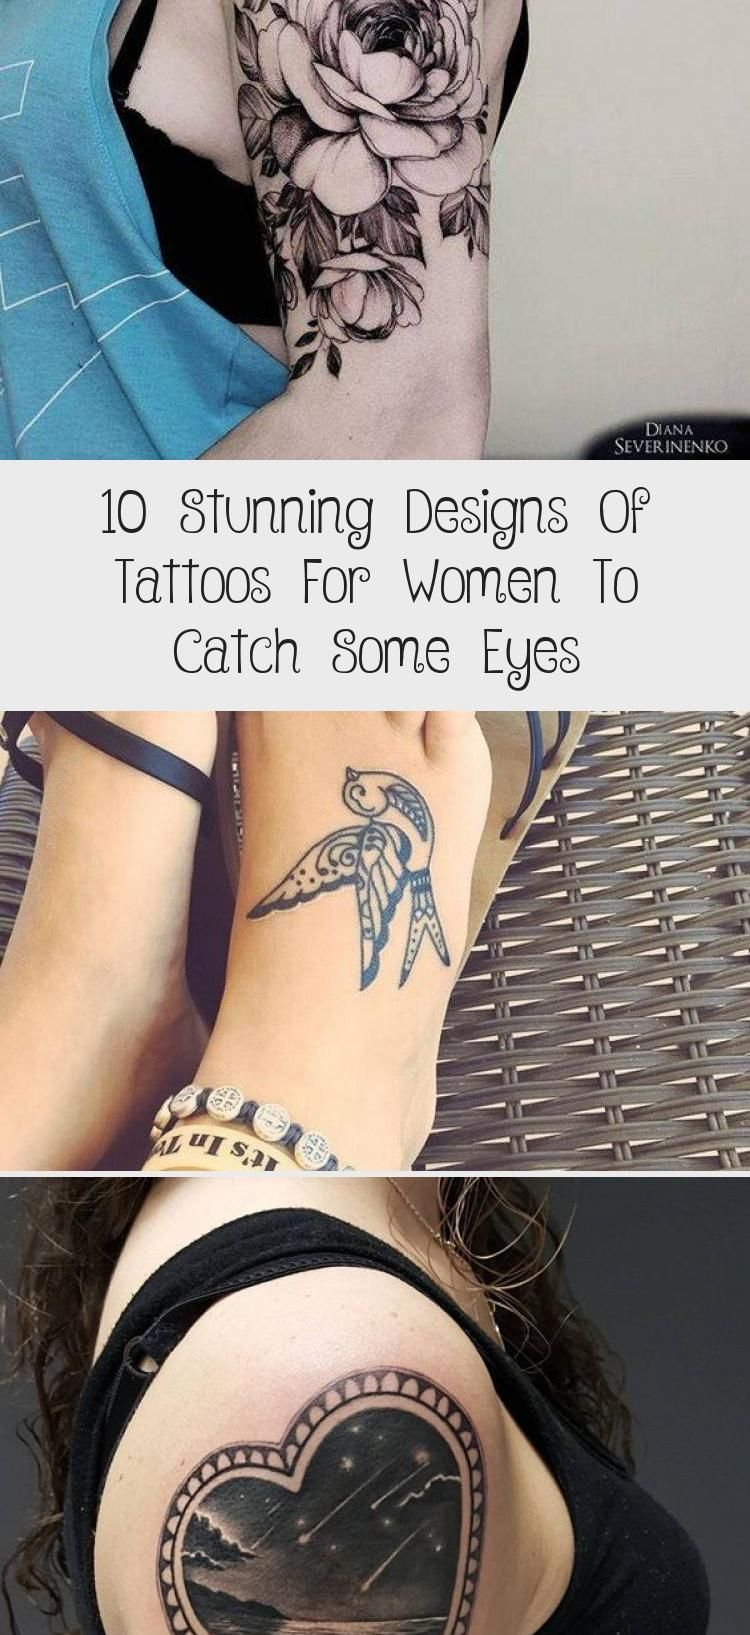 Girls nowadays like unique fashion ideas. Tattoos are one